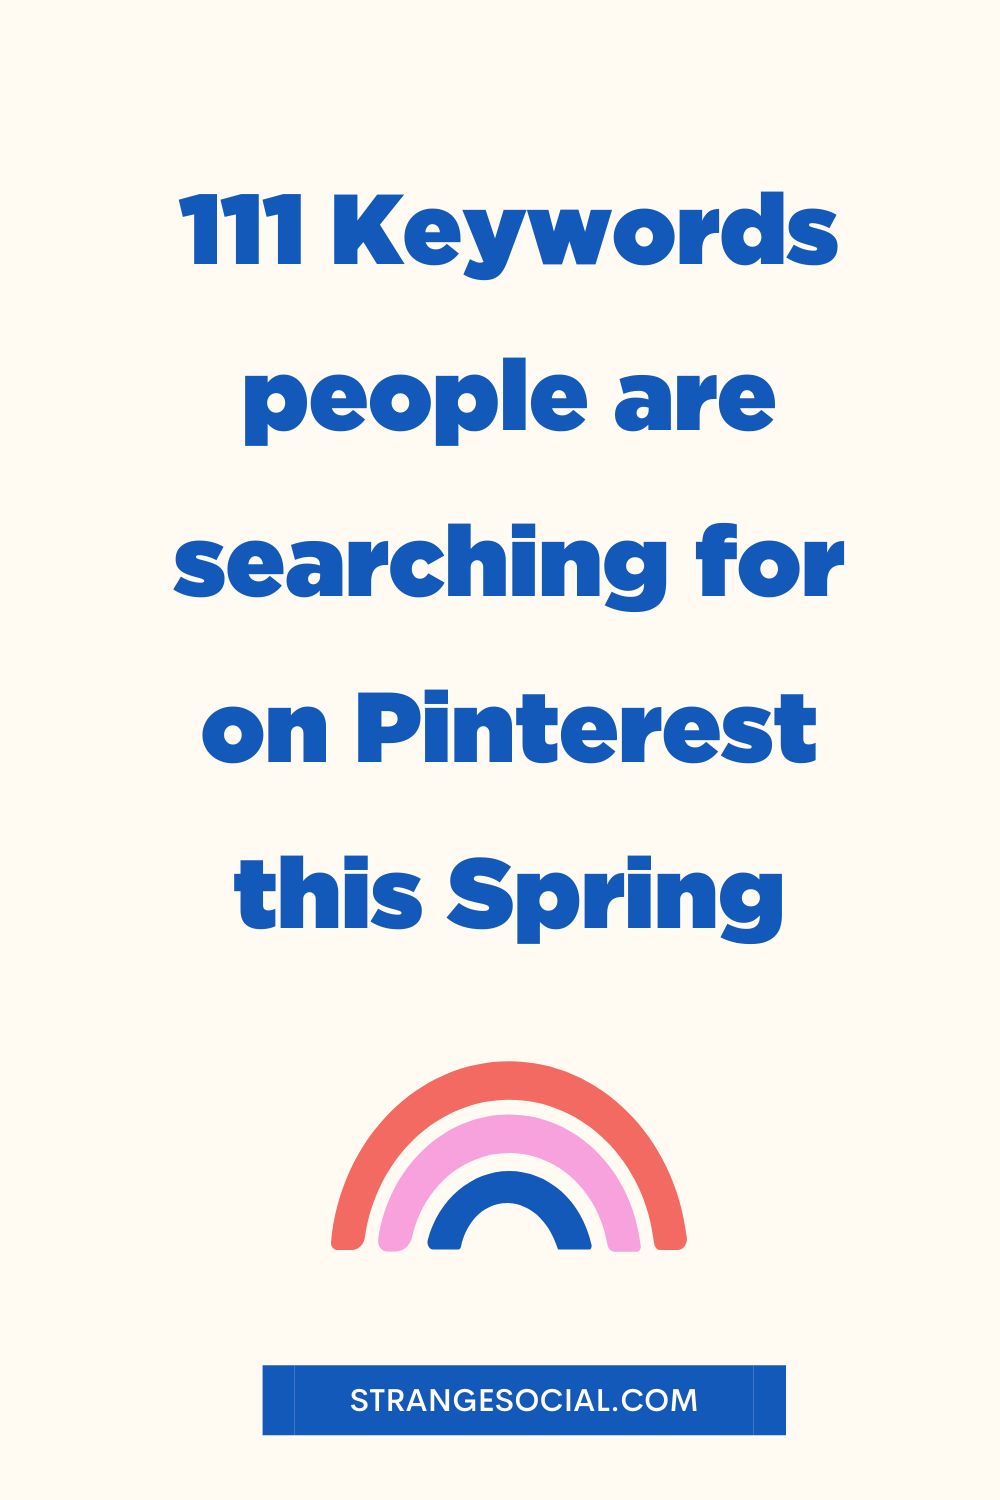 111 content ideas for Spring: Pinterest for business